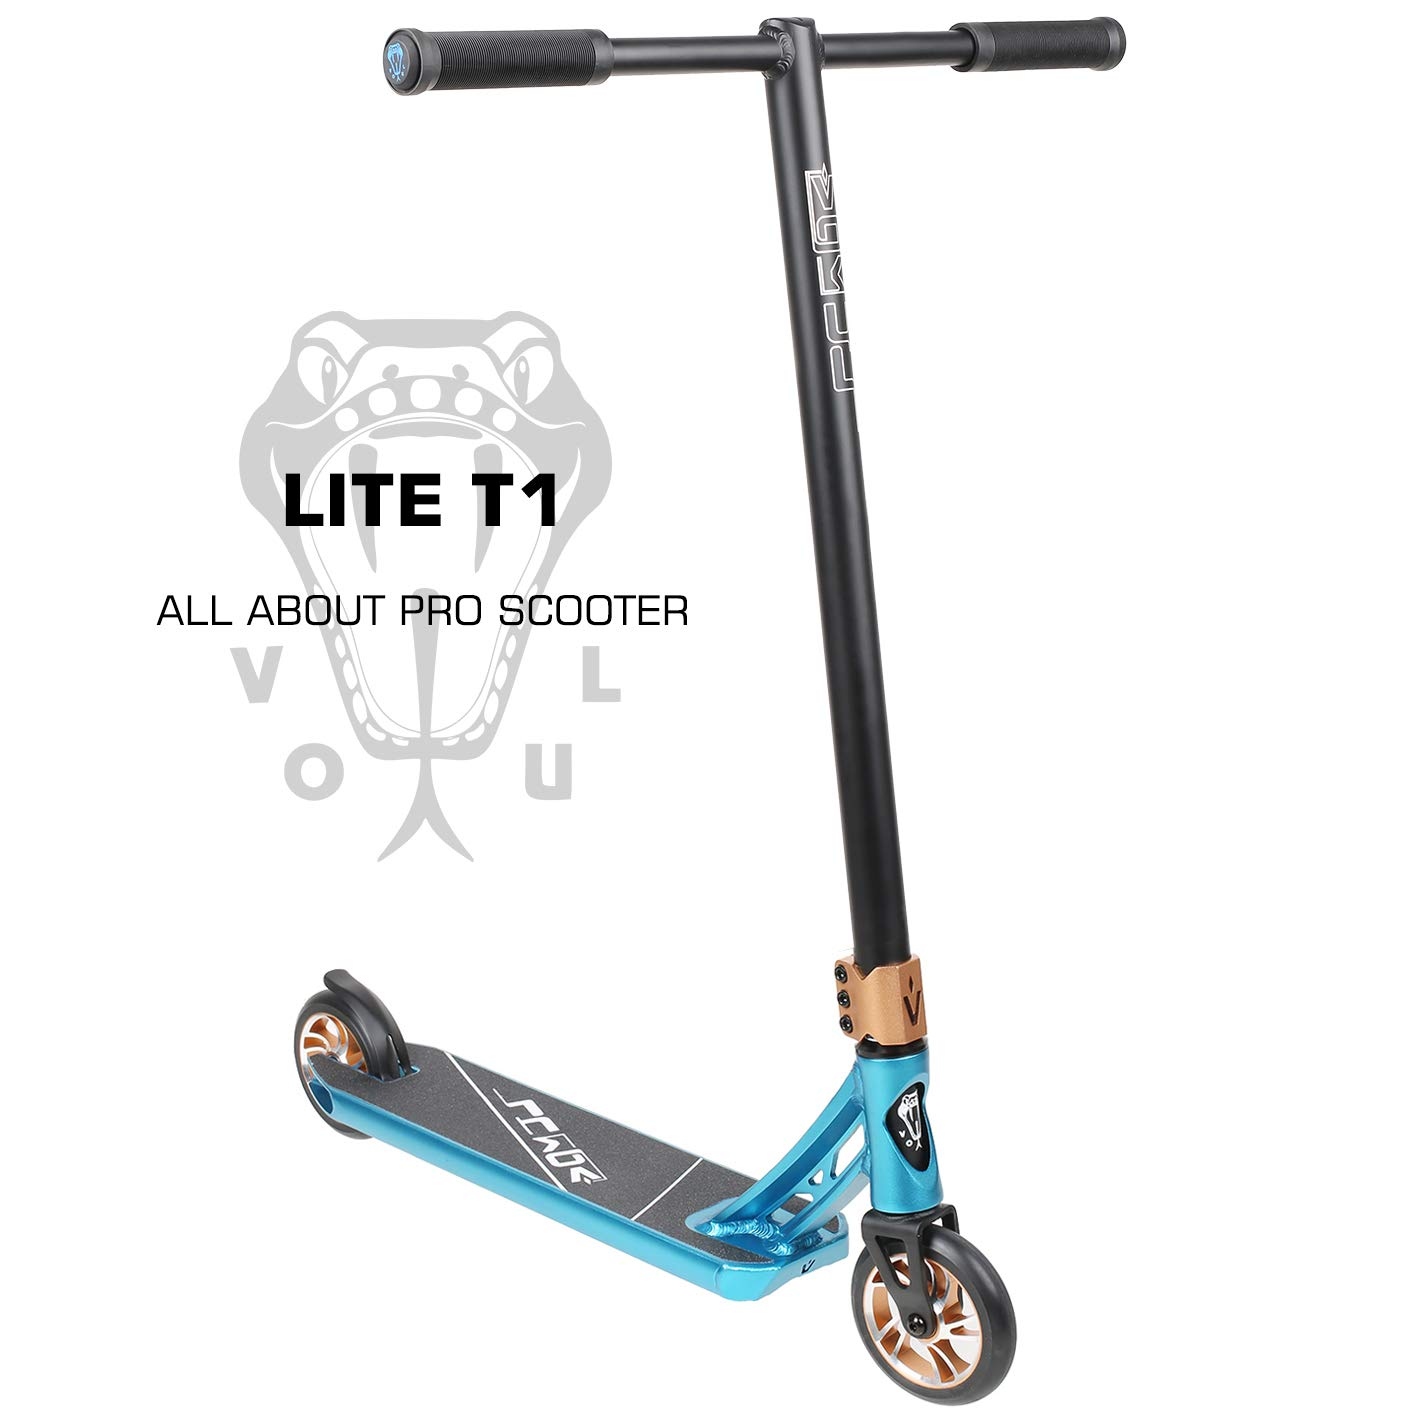 VOKUL LITE Series Complete Pro Stunt Scooter for Kids/Teens, with Reinforced Frame -Lightweight Aluminum Handlebars and 120mm Metal Core Wheels (Blue)